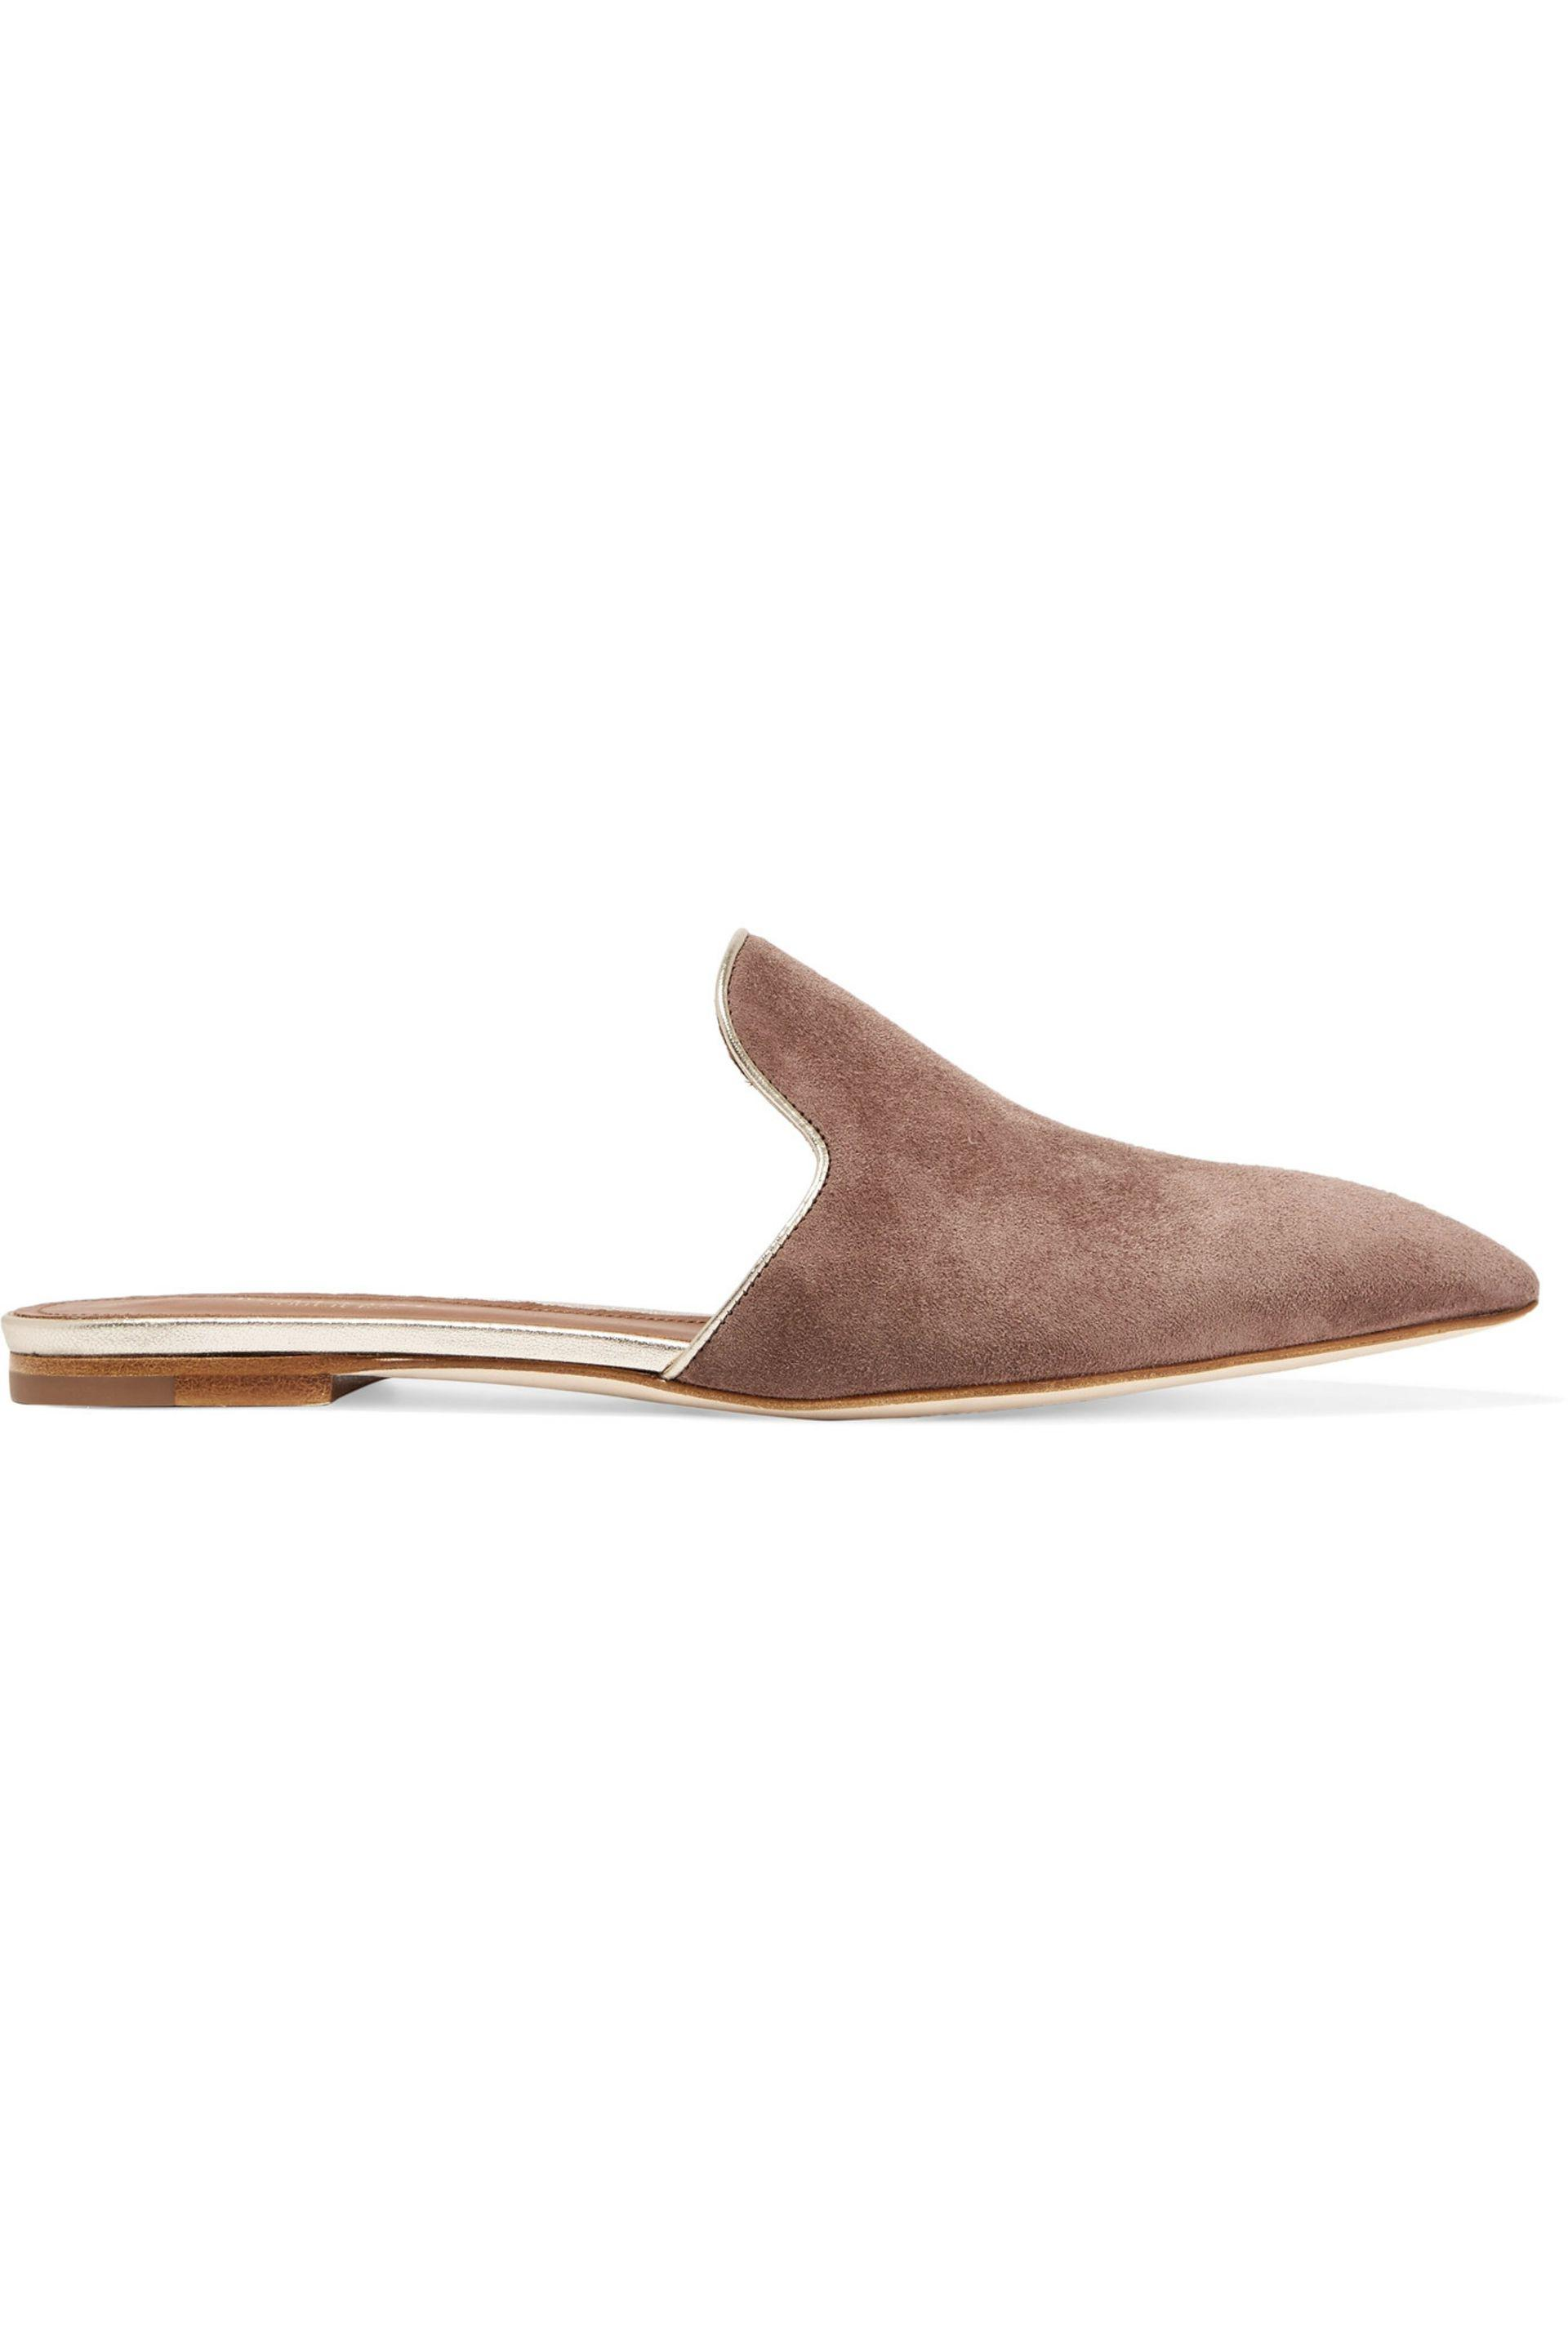 MALONE SOULIERS Marianne Suede Slippers xBZcv7tY